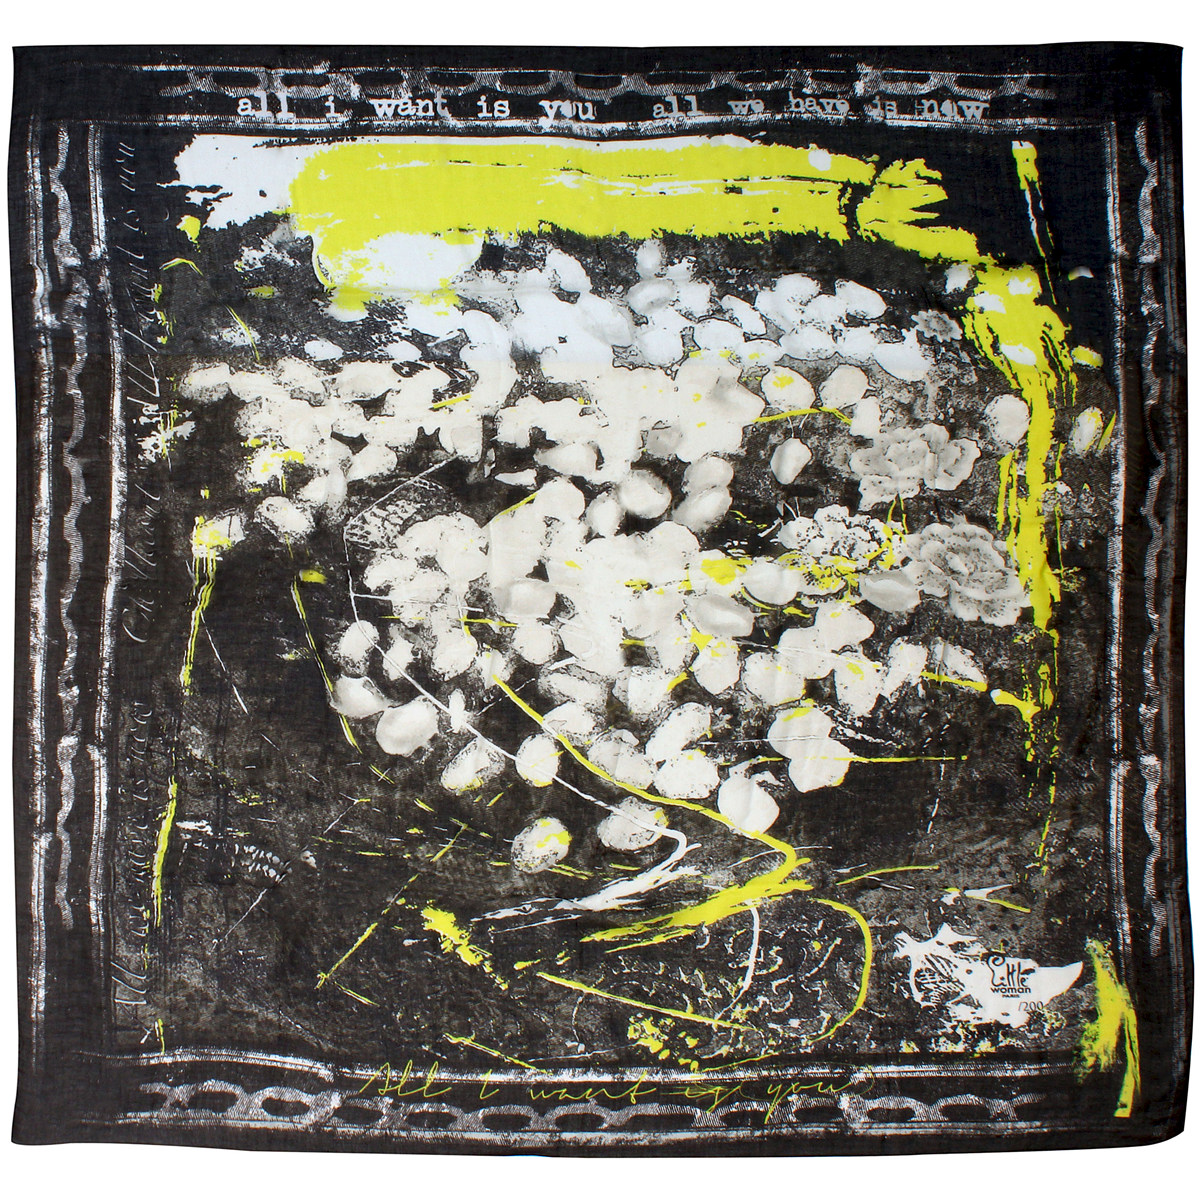 Foulard createur noir et jaune plat little woman paris